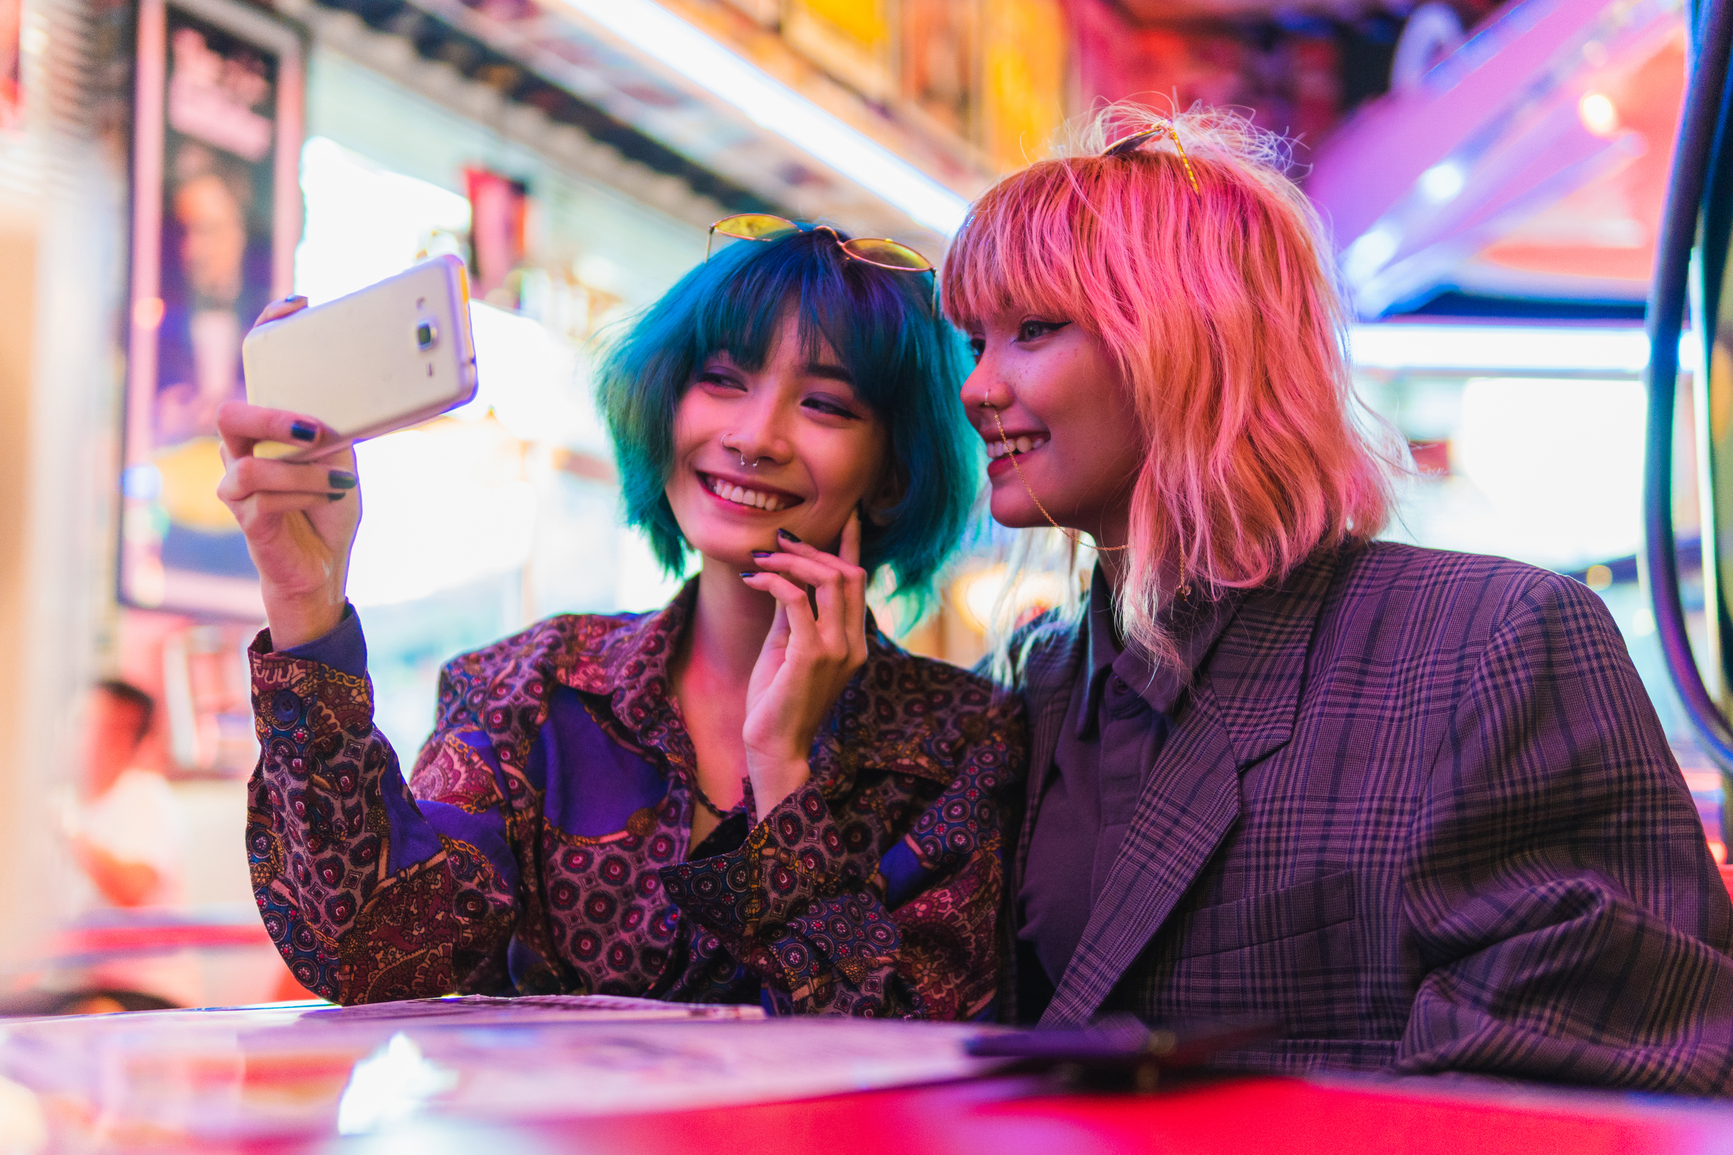 Stock photo of two asian alternative girls with pink and green hair, sitting in a diner inside taking a selfie smiling.